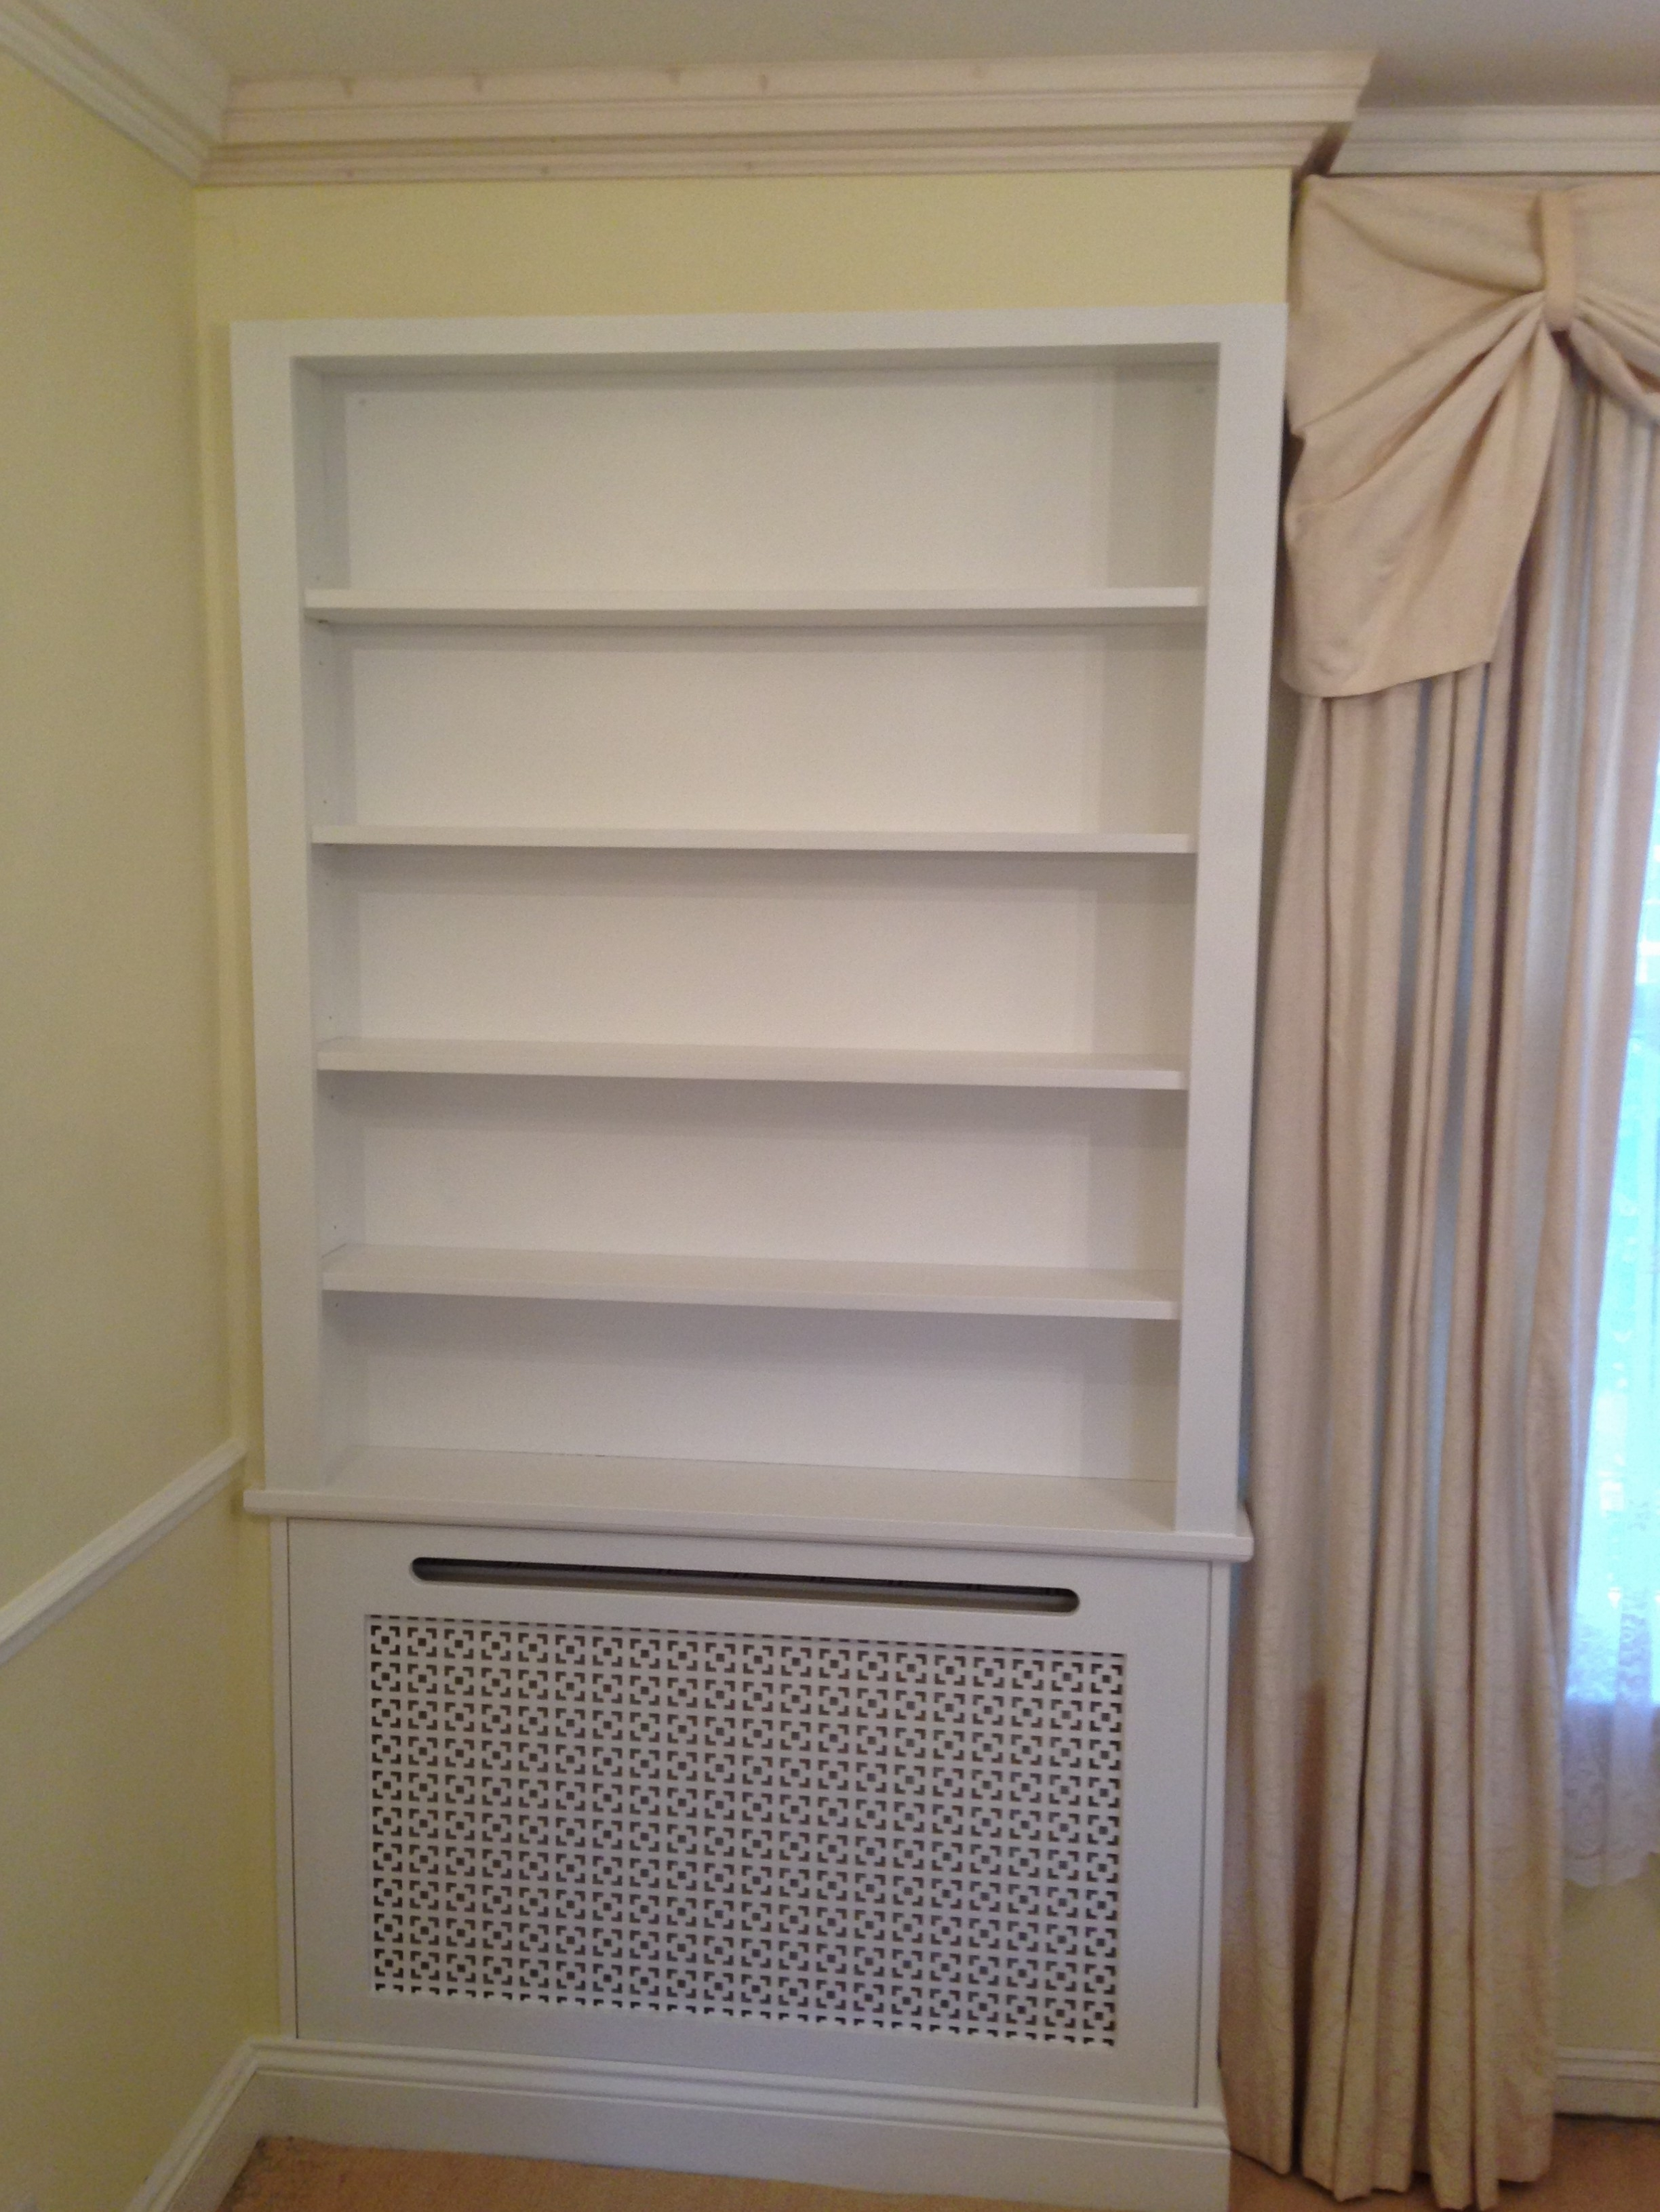 Radiator Cover Bookcases With Most Current Radiator Cover Bookcase – Harrow Builders And Bespoke Joinery – Lj (View 10 of 15)